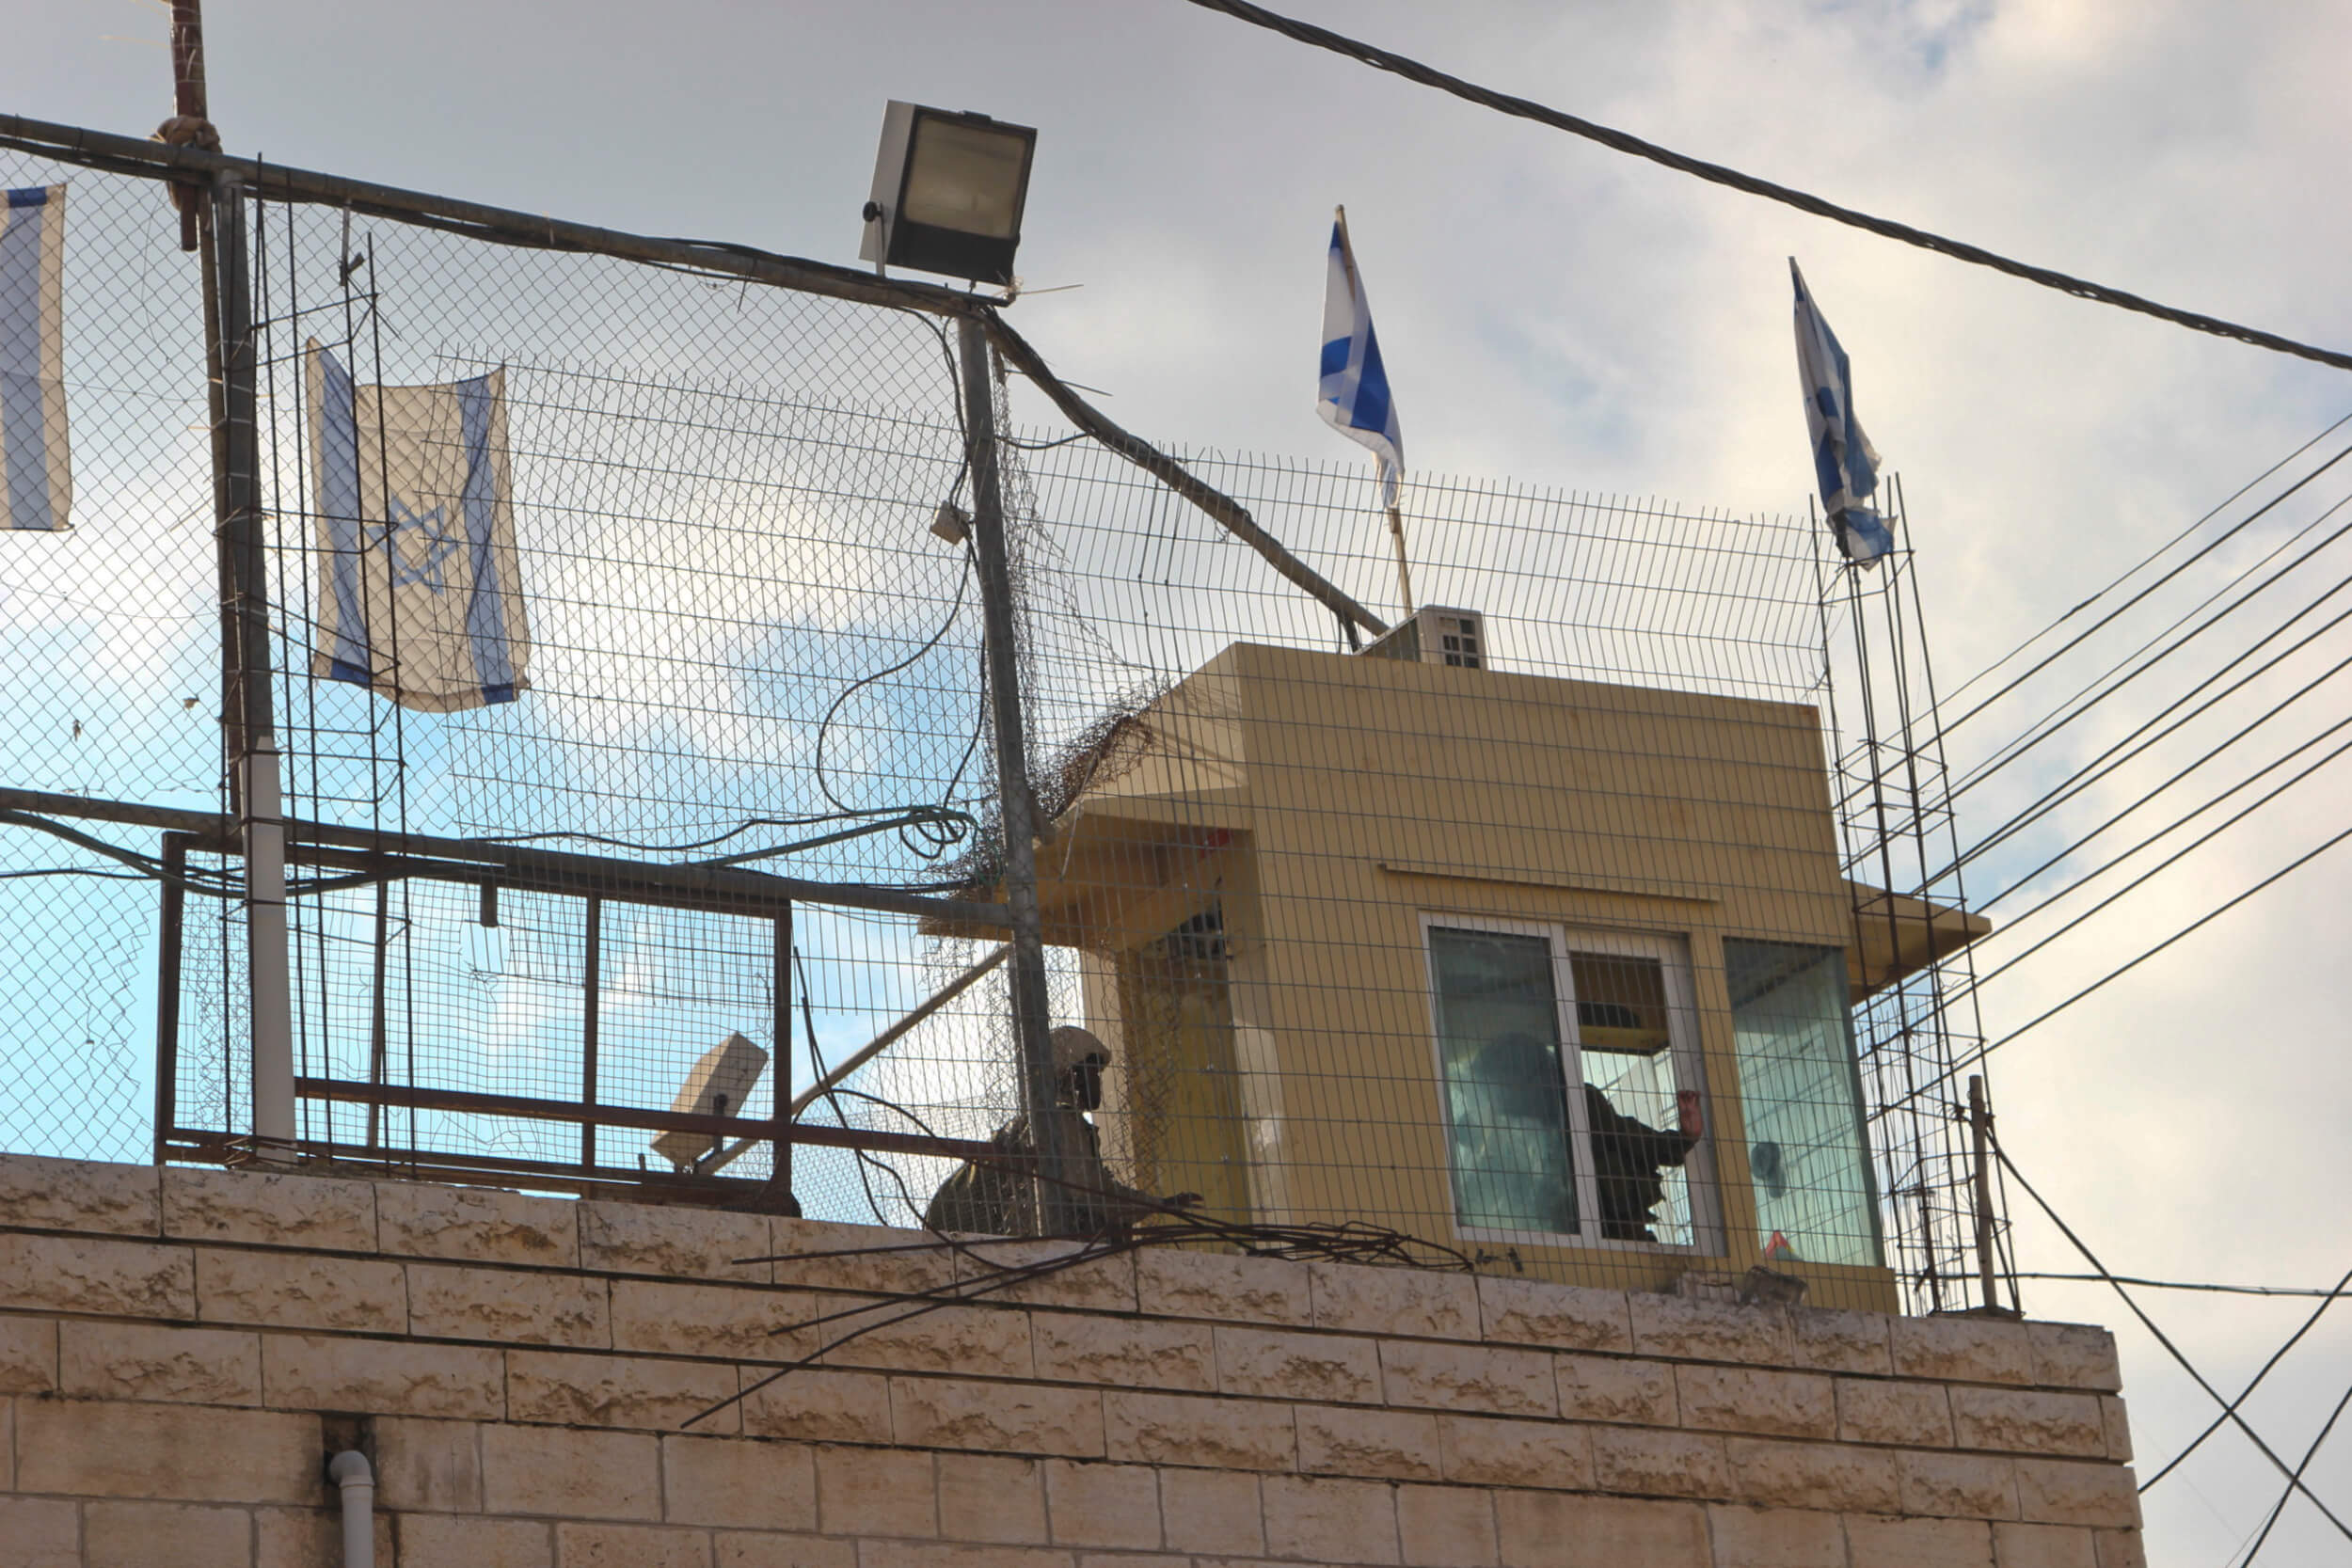 Israeli soldiers in watchtower overlooking Hebron. (Photo: Megan Hanna)